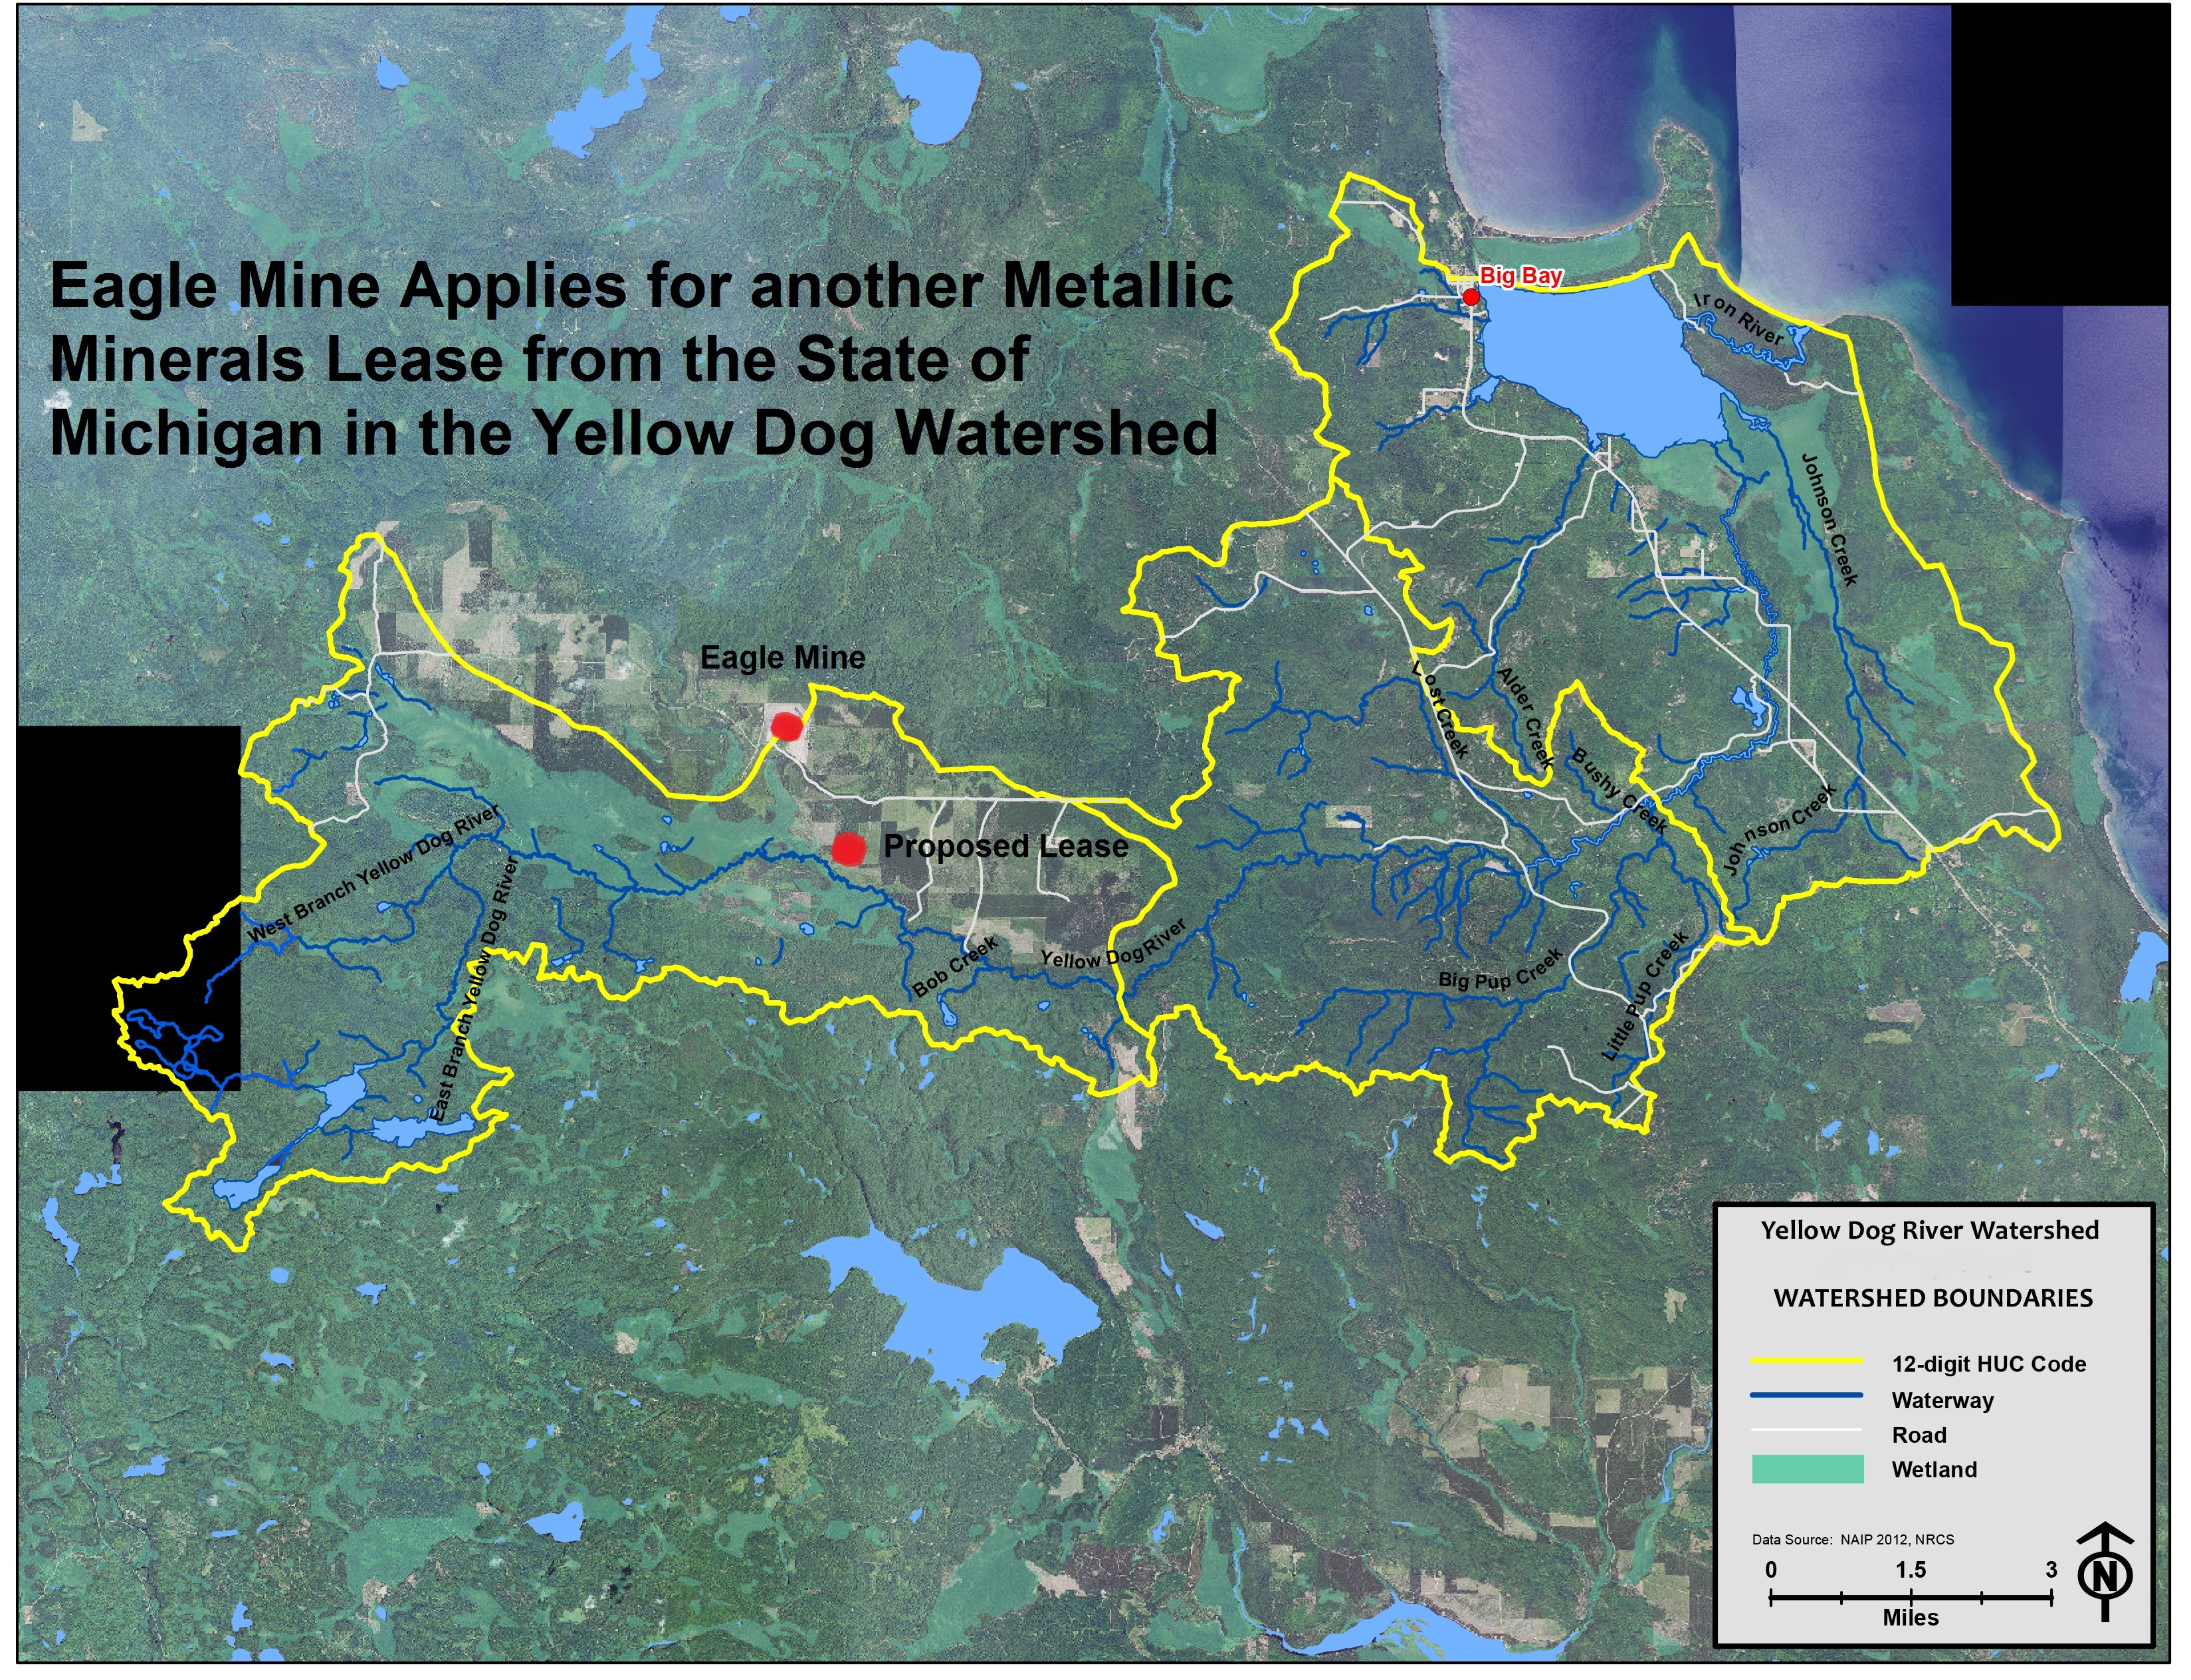 Eagle Mine Applies for another Metallic Minerals Lease from the state of Michigan in the Yellow Dog Watershed.